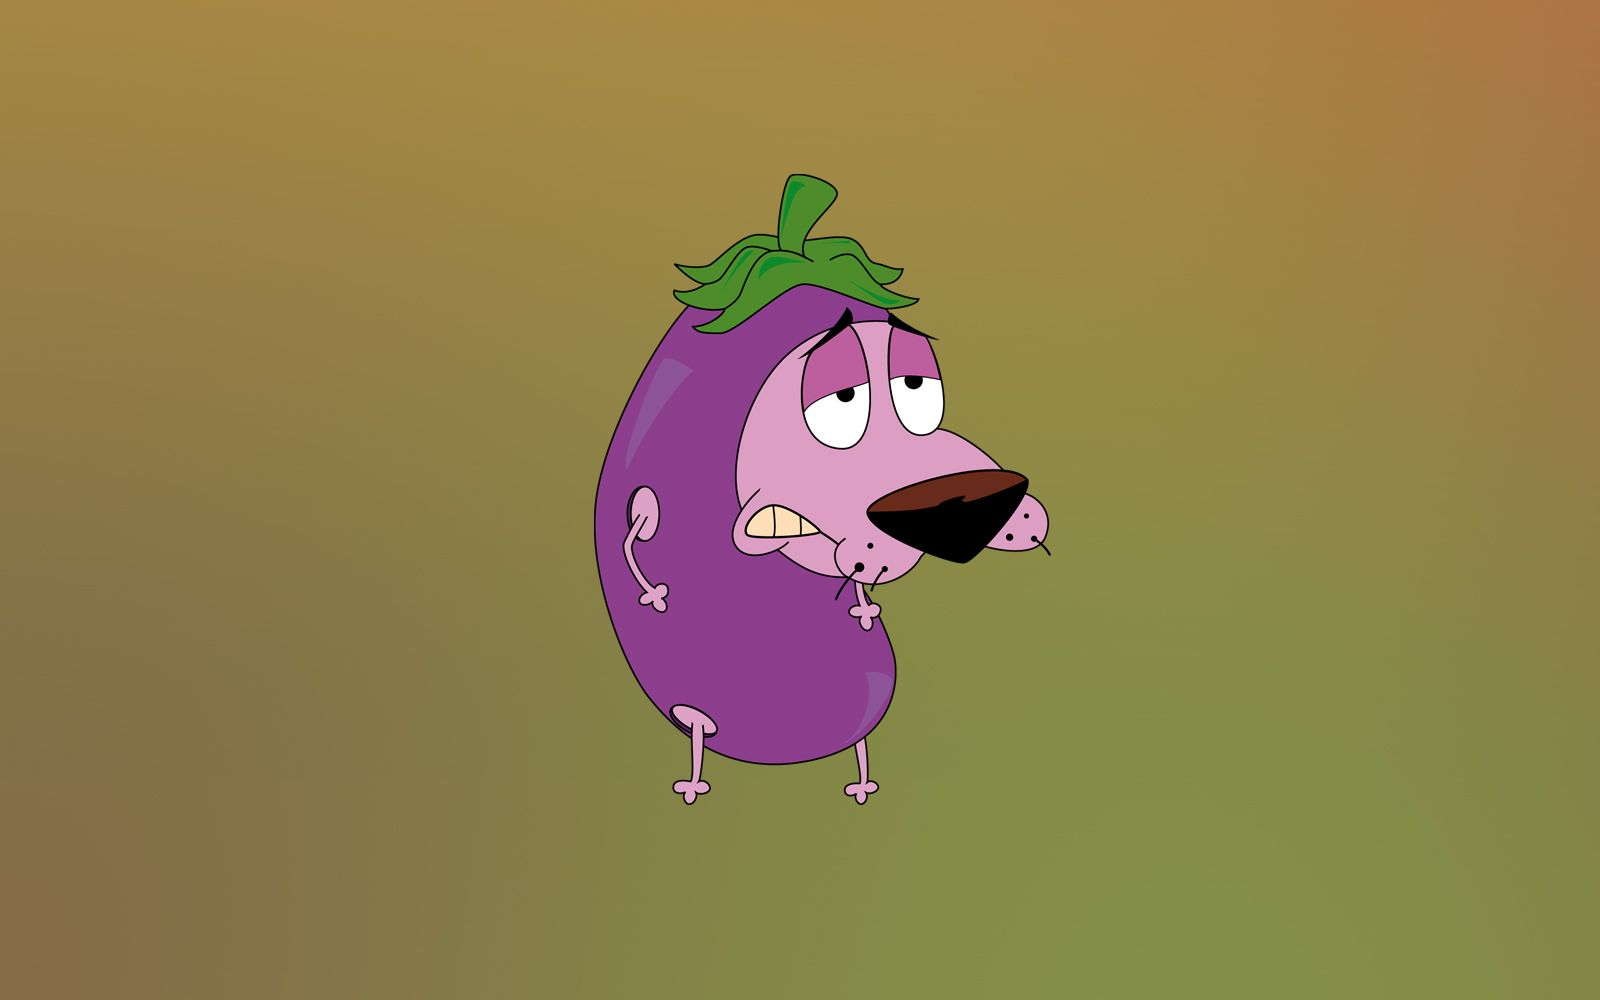 Courage The Cowardly Dog HD Images 3 whb #CourageTheCowardlyDogHDImages  #CourageTheCowardlyDog #cartoons #wallpapers